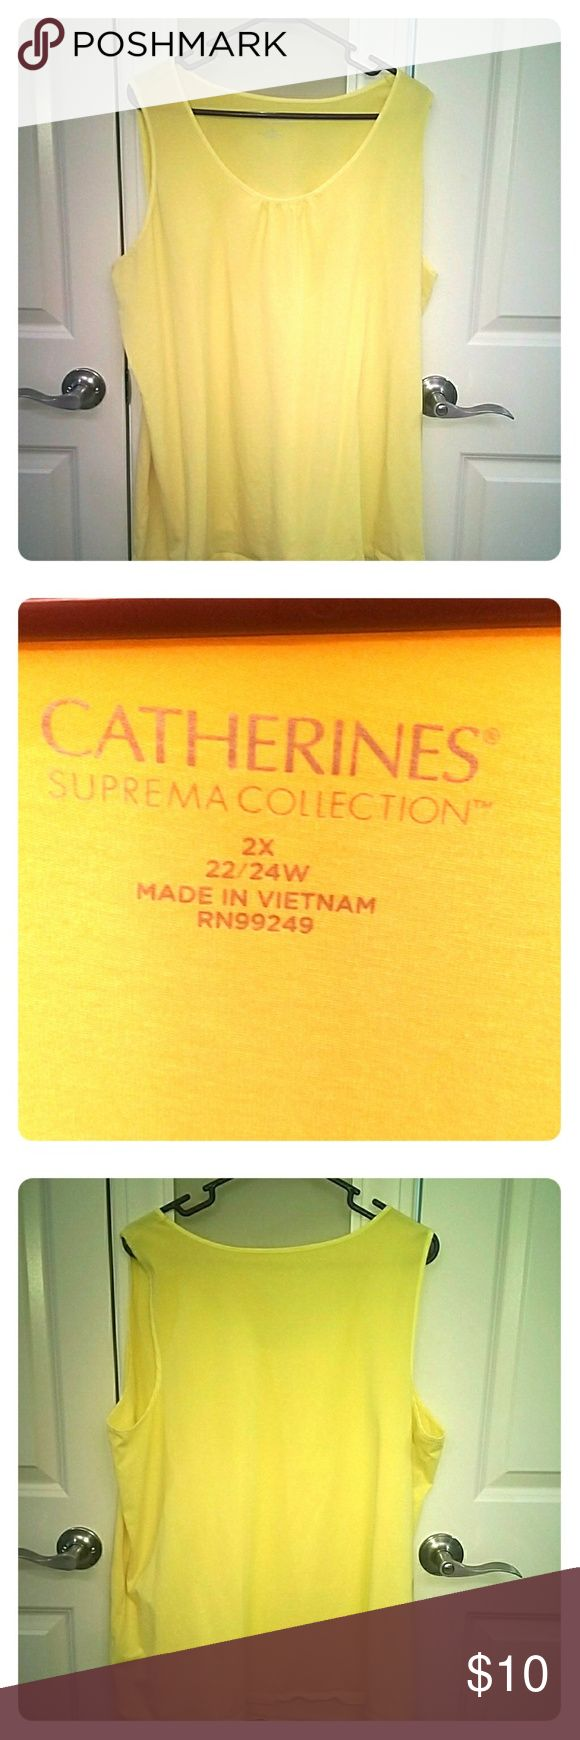 Catherine's Suprema Collection tank top - Yellow Comfortable tank top from the Supreme Collection.  Very comfortable, gently worn, once. 22/24W 2X. Wear it casual or with a blazer jacket it's very versatile. Catherines Tops Tank Tops